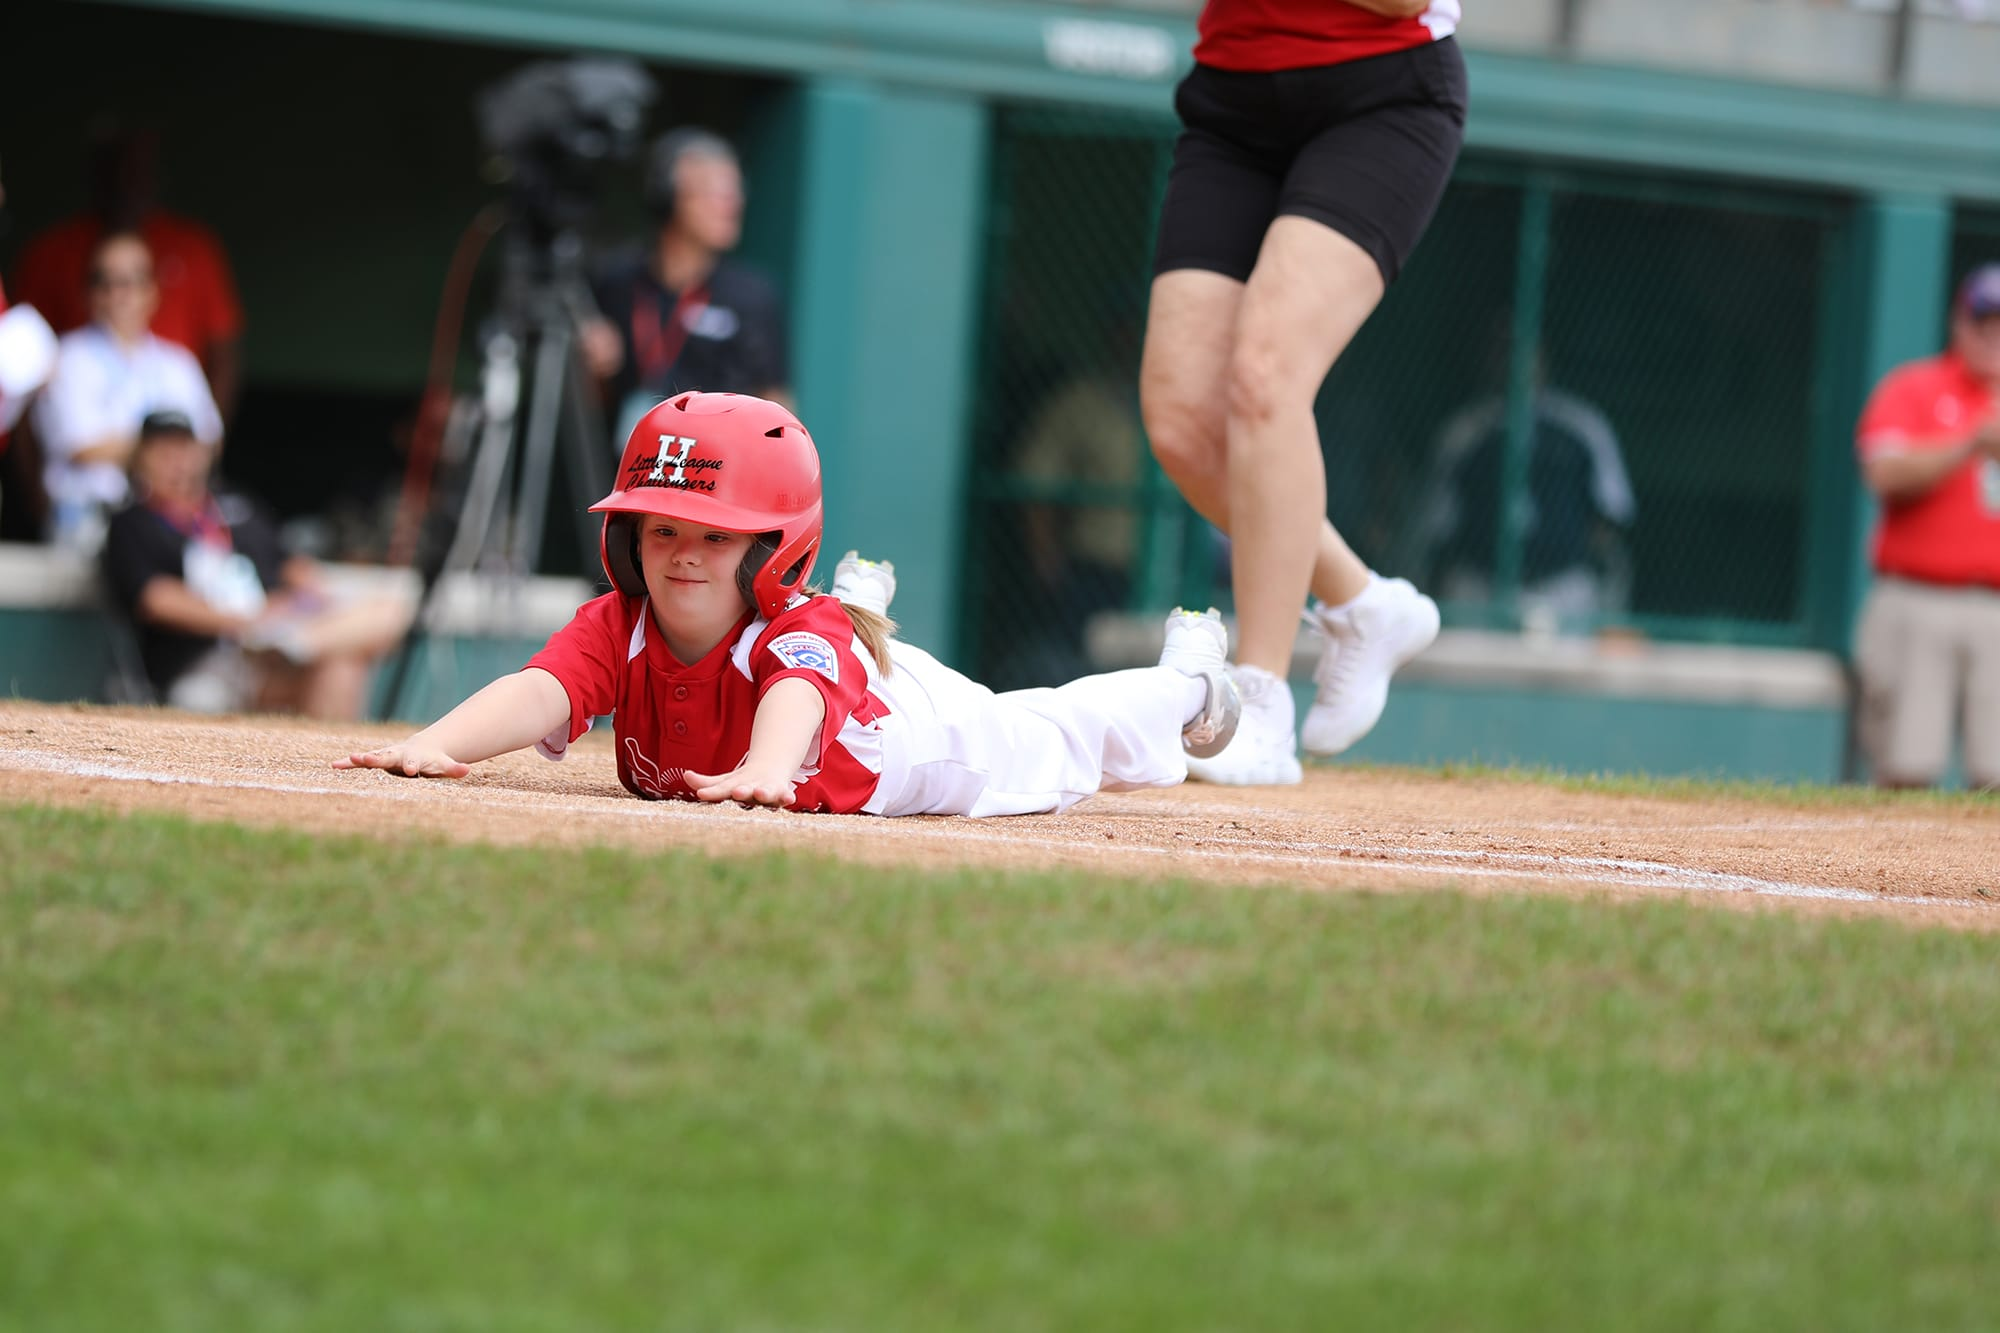 challenger game - player sliding into homeplate